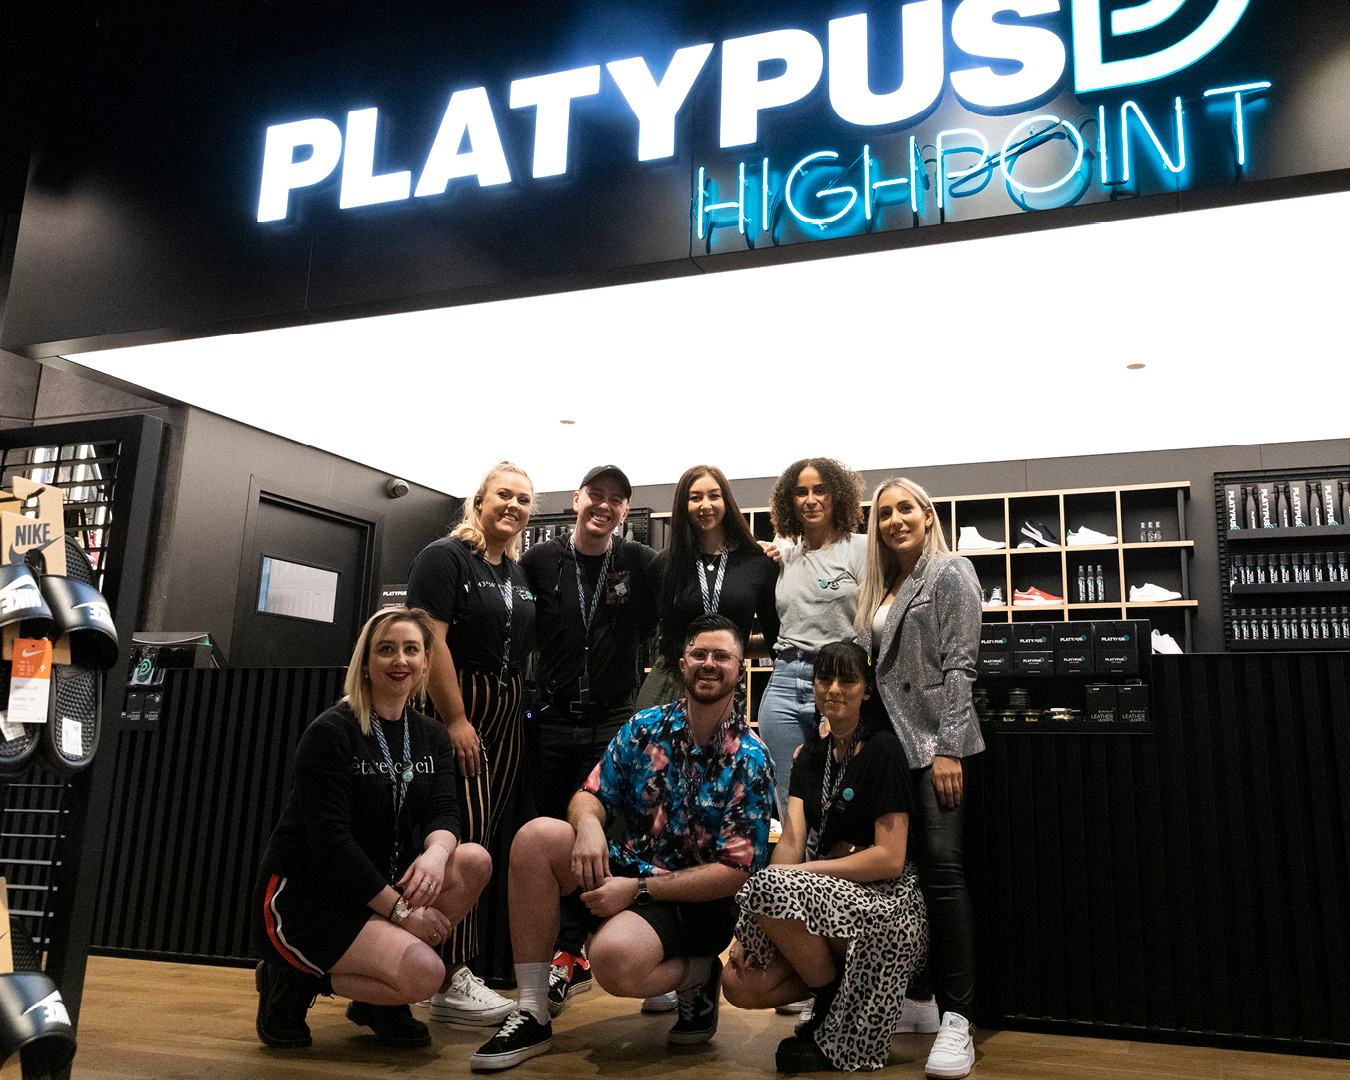 Platypus Highpoint retail team standing in front of logo sign